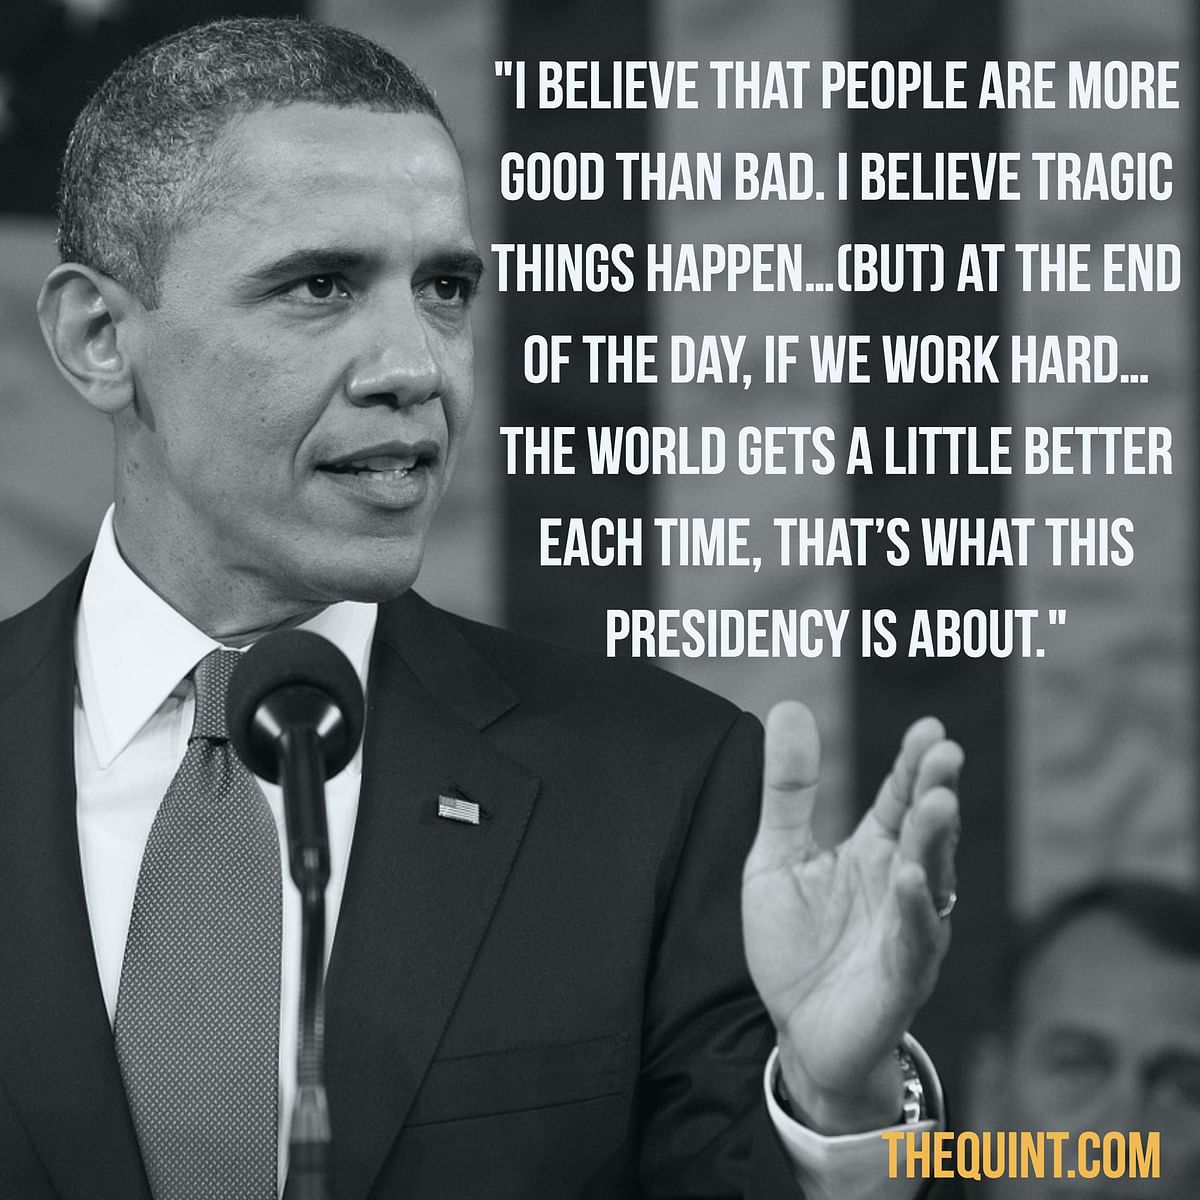 Obama's Parting Words: I Think We Are All Going to Be Okay